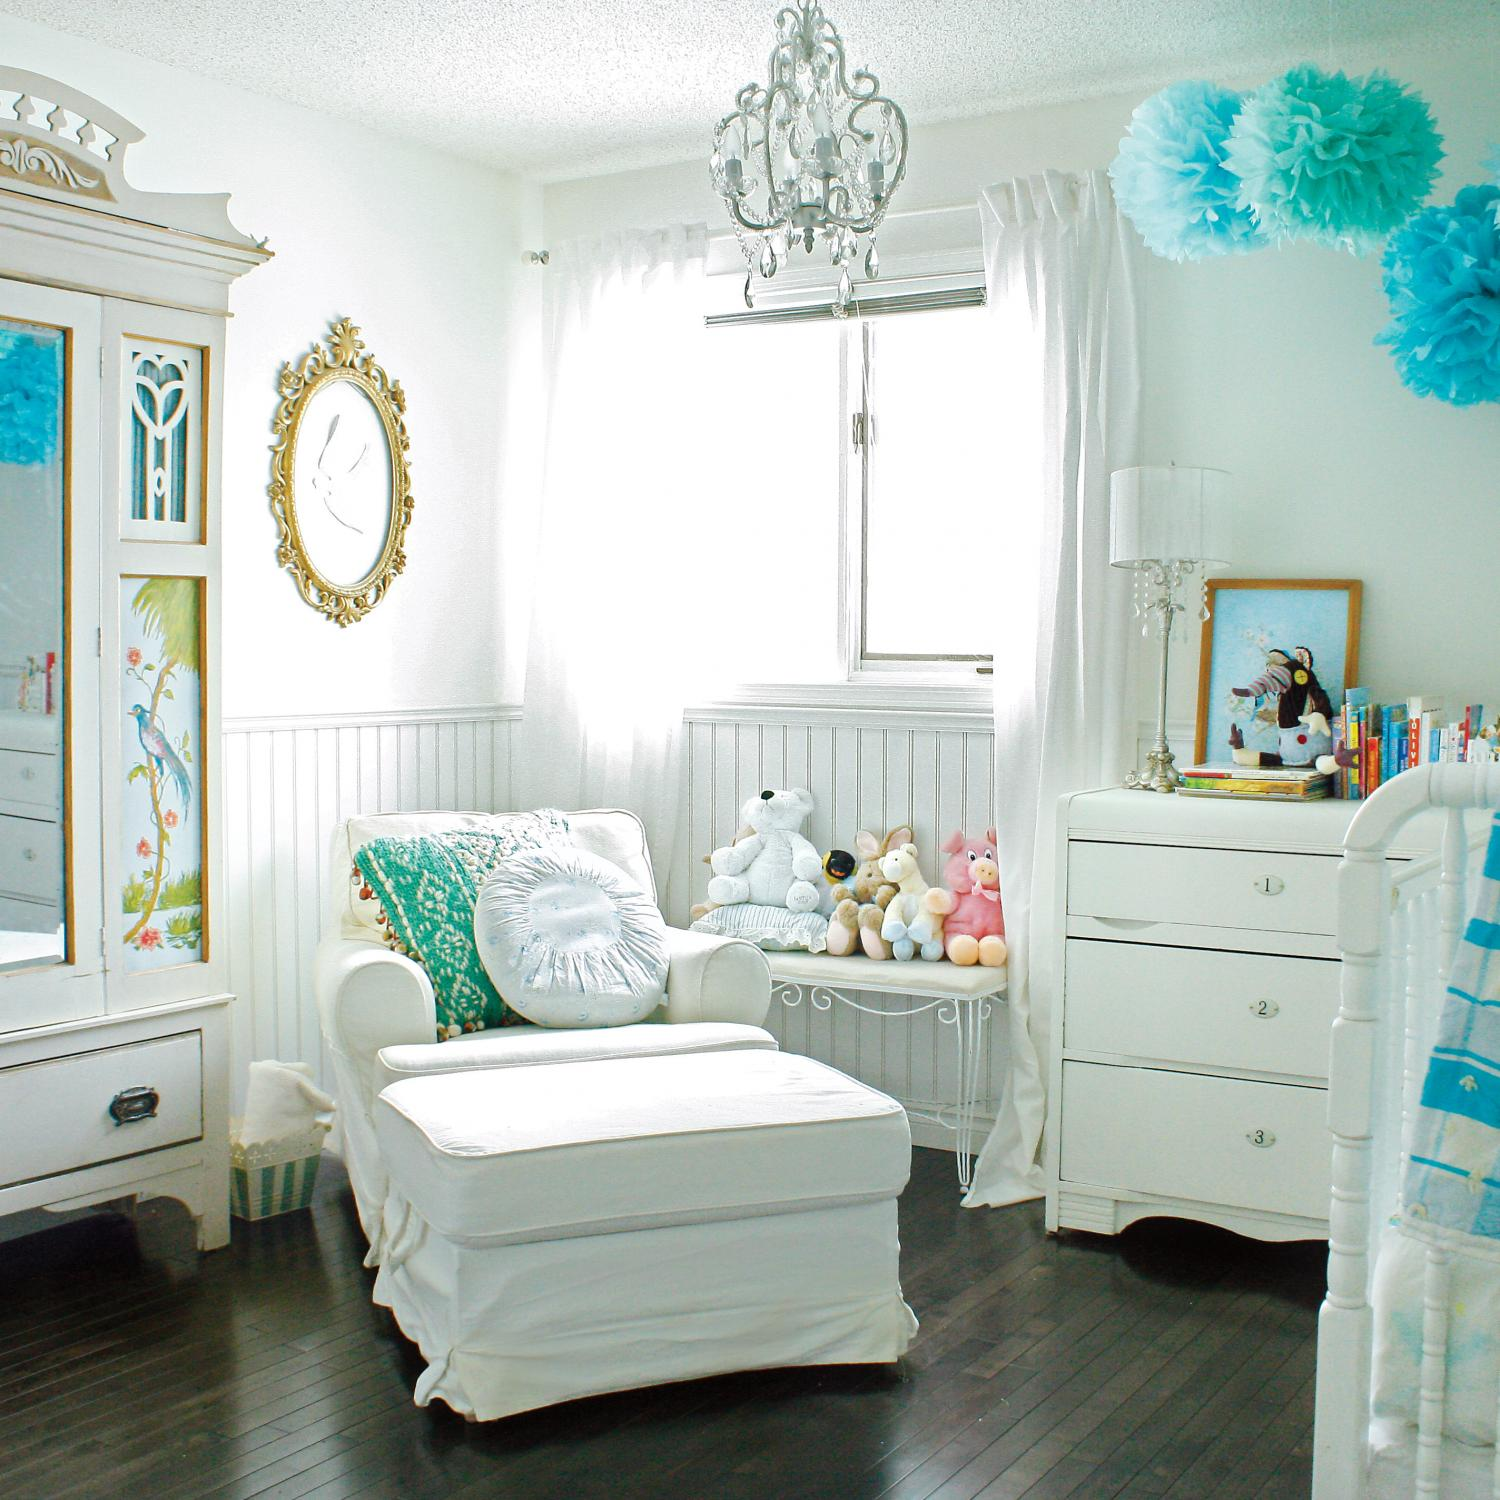 The Hallam Family Baby Room Ideas: Unique Nursery Decorating Ideas